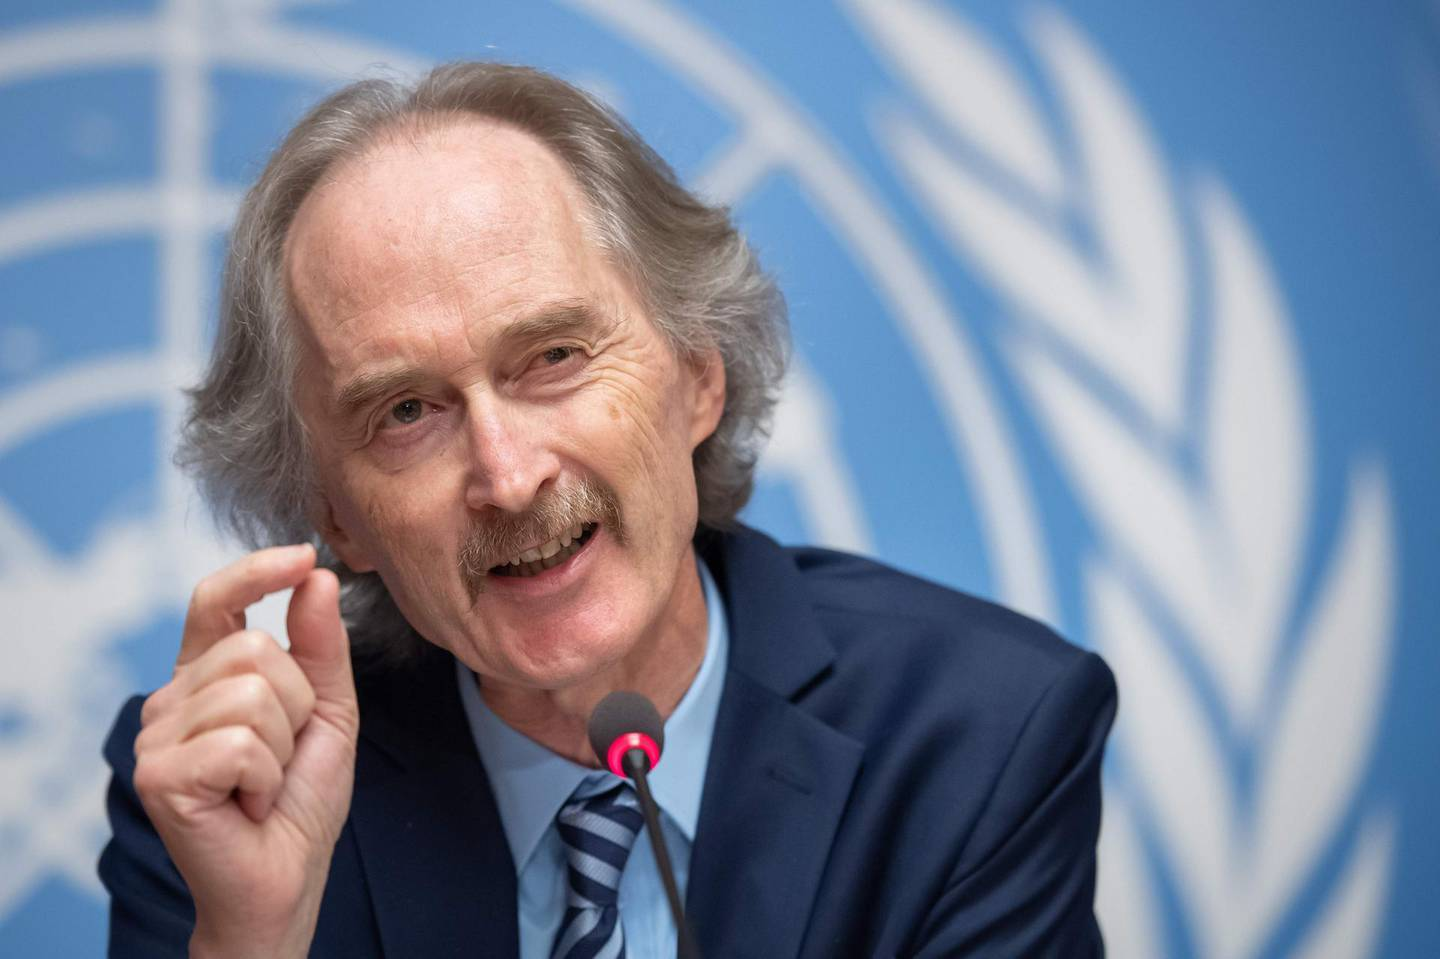 UN Special Envoy for Syria, Geir Pedersen, gestures during a news conference on meeting of the Syria constitutional committee on October 28, 2019 at the United Nations Offices in Geneva.  / AFP / Fabrice COFFRINI